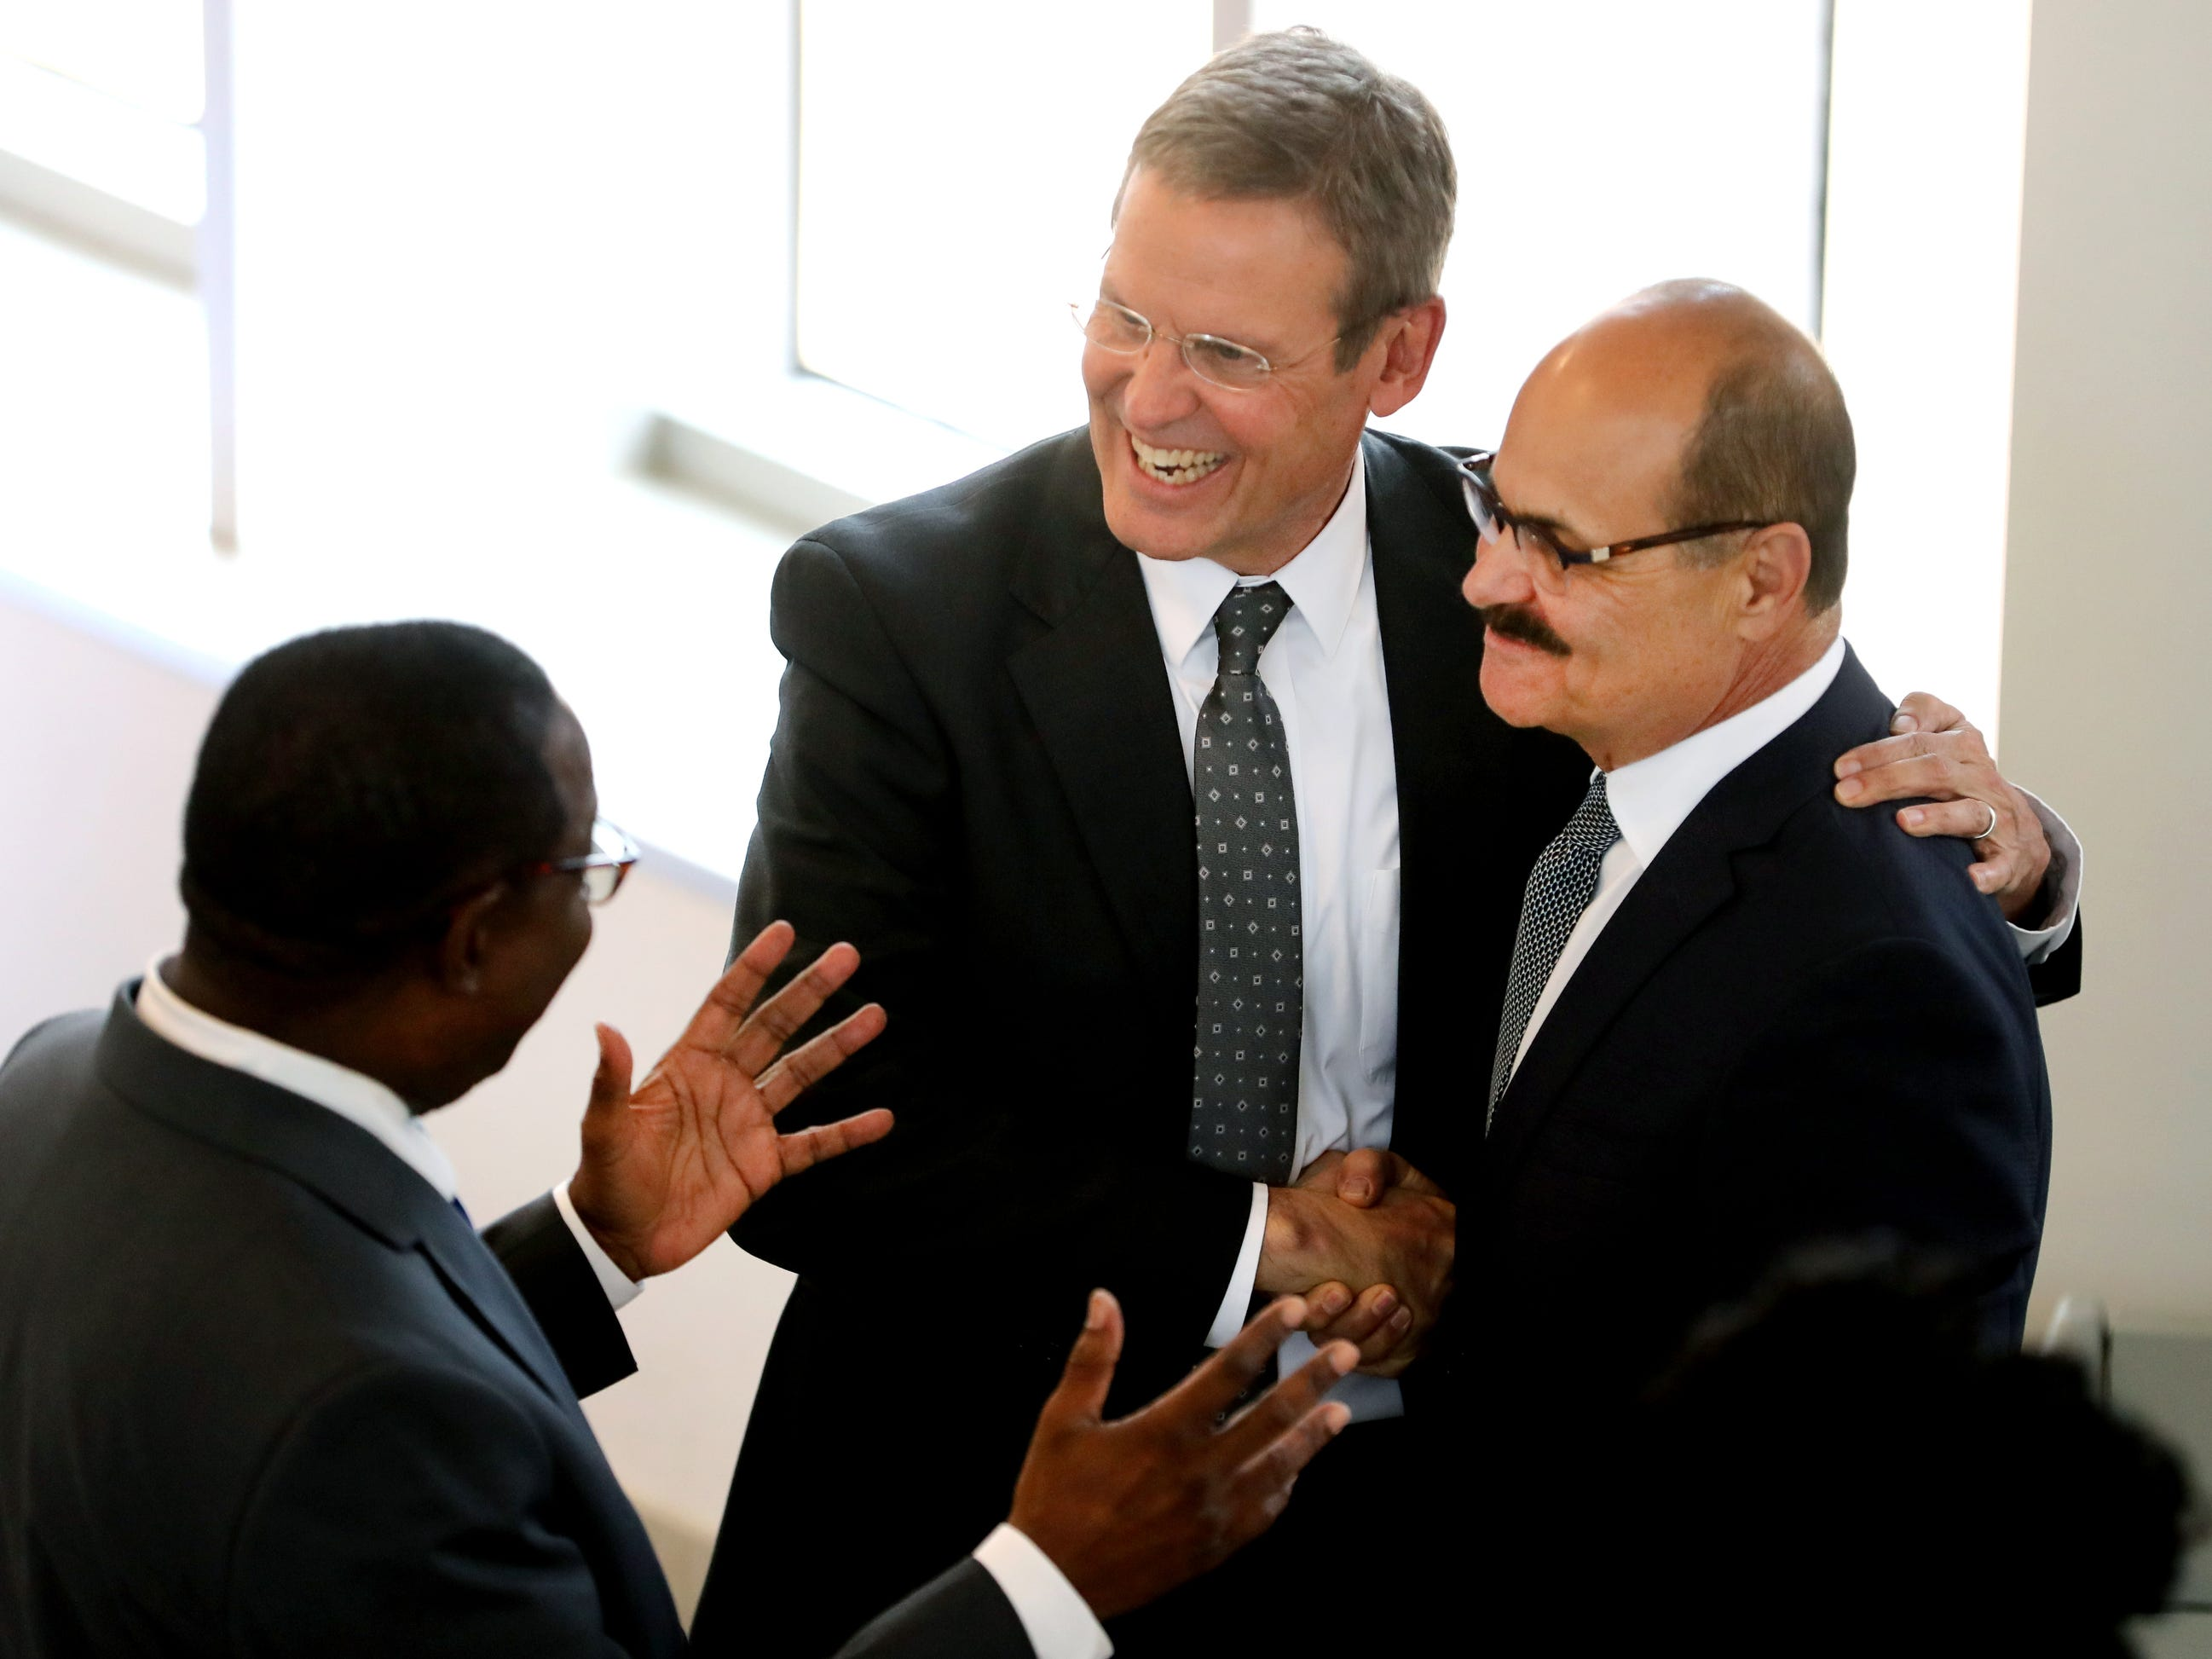 Tennessee Governor Bill Lee, center talks with MTSU president Sidney McPhee, left and Charlie Lico, right before Lee spoke at MTSU's program recognizing the Siemens' grant to MTSU's Mechatronics Engineering program, on Wednesday April 3, 2019.